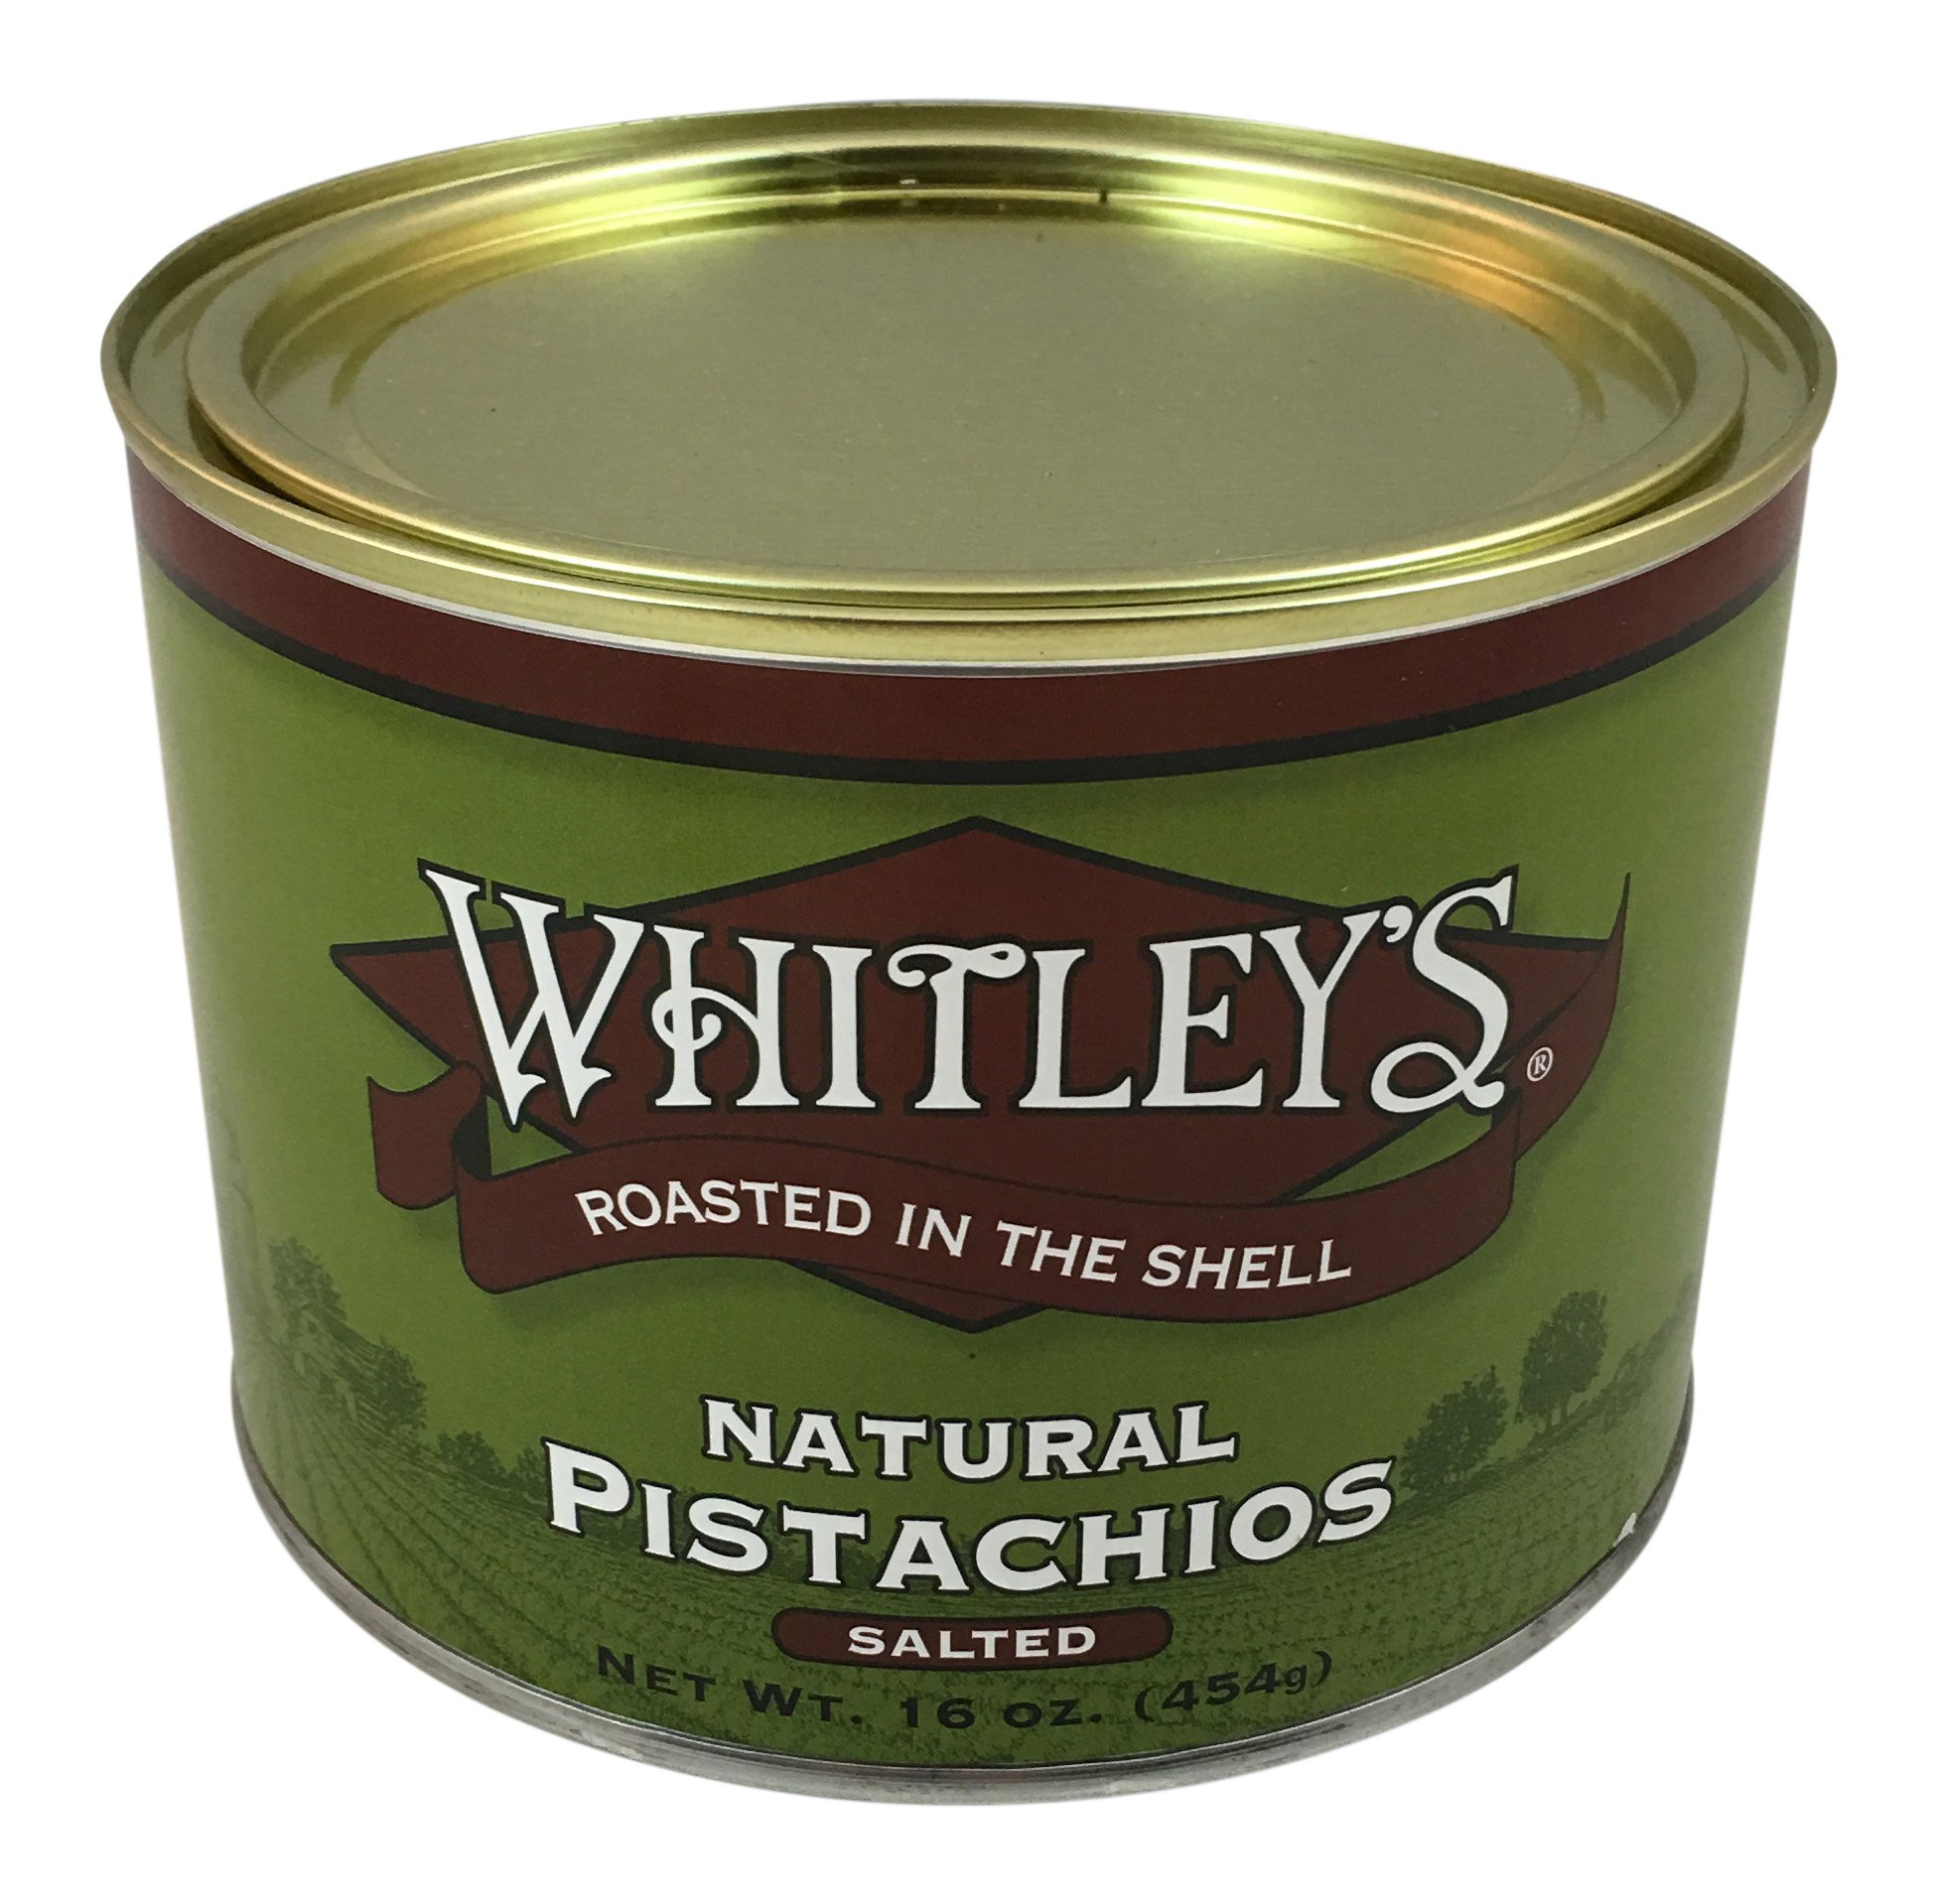 Whitley's Natural Pistachios Salted 16 Oz.